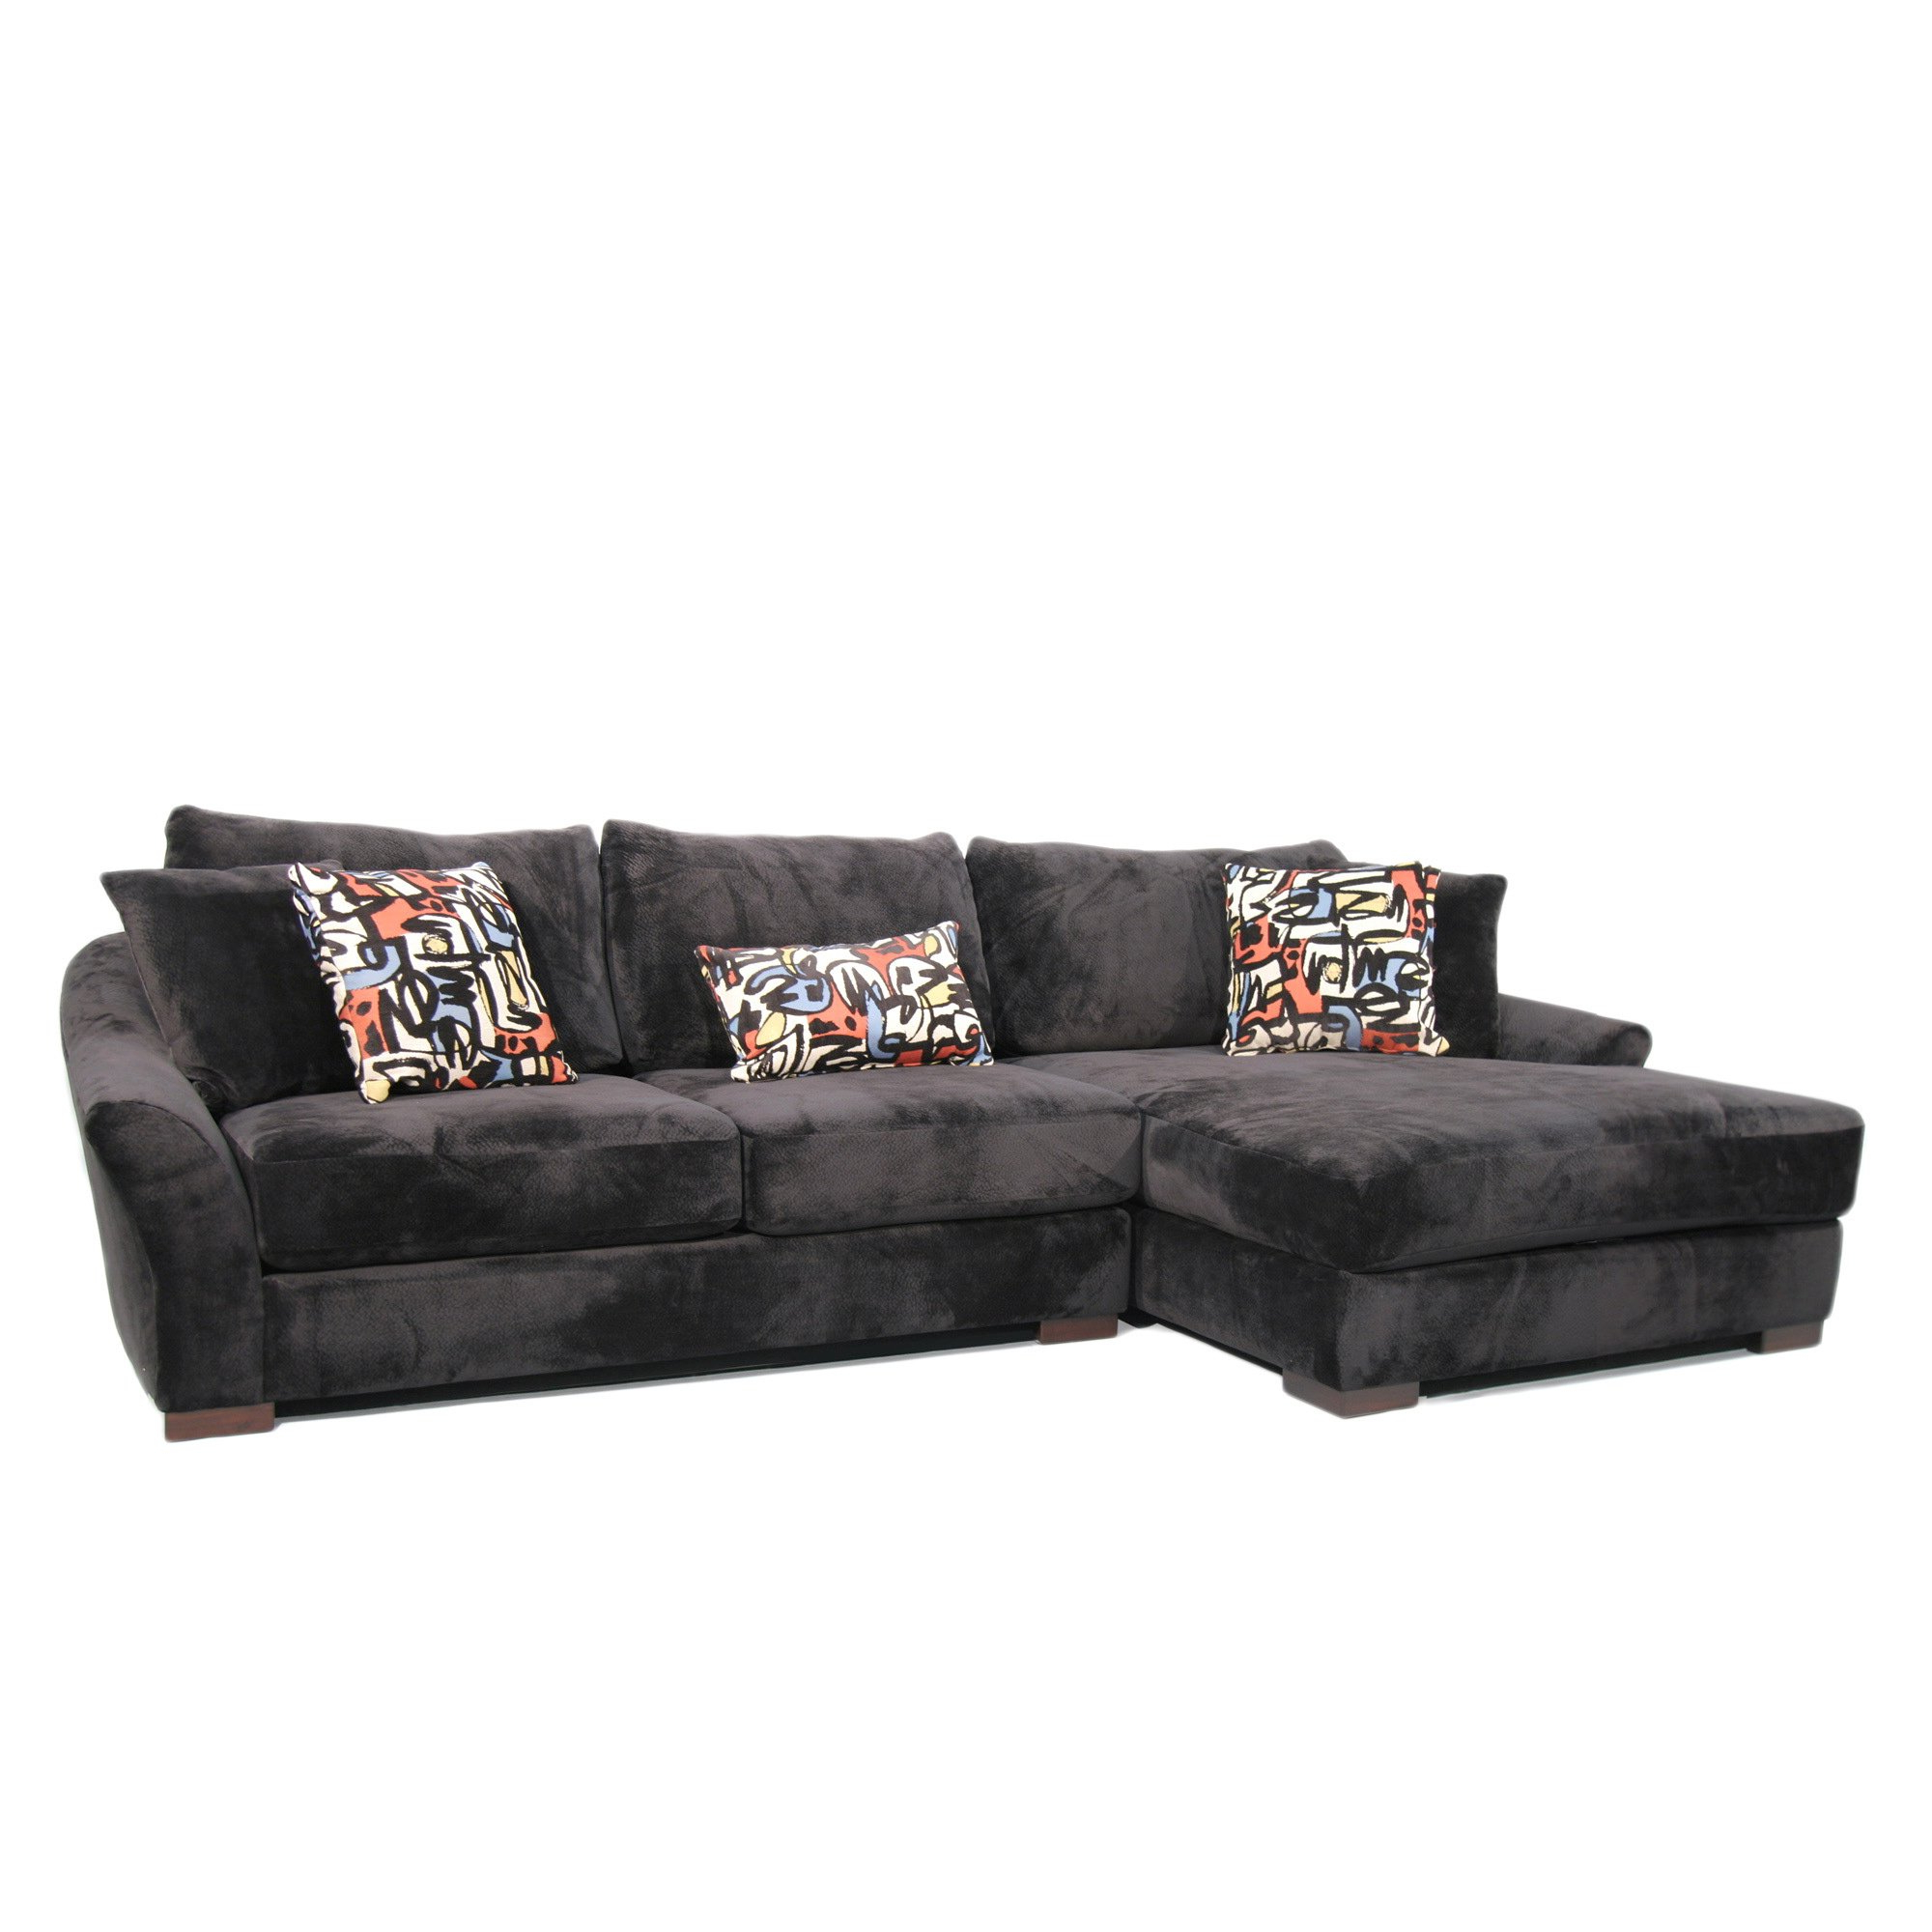 Newest Harper Foam 3 Piece Sectionals With Raf Chaise Within Shop Fairmont Designs Made To Order Audrey 3 Piece Ebony Sectional (Gallery 14 of 20)